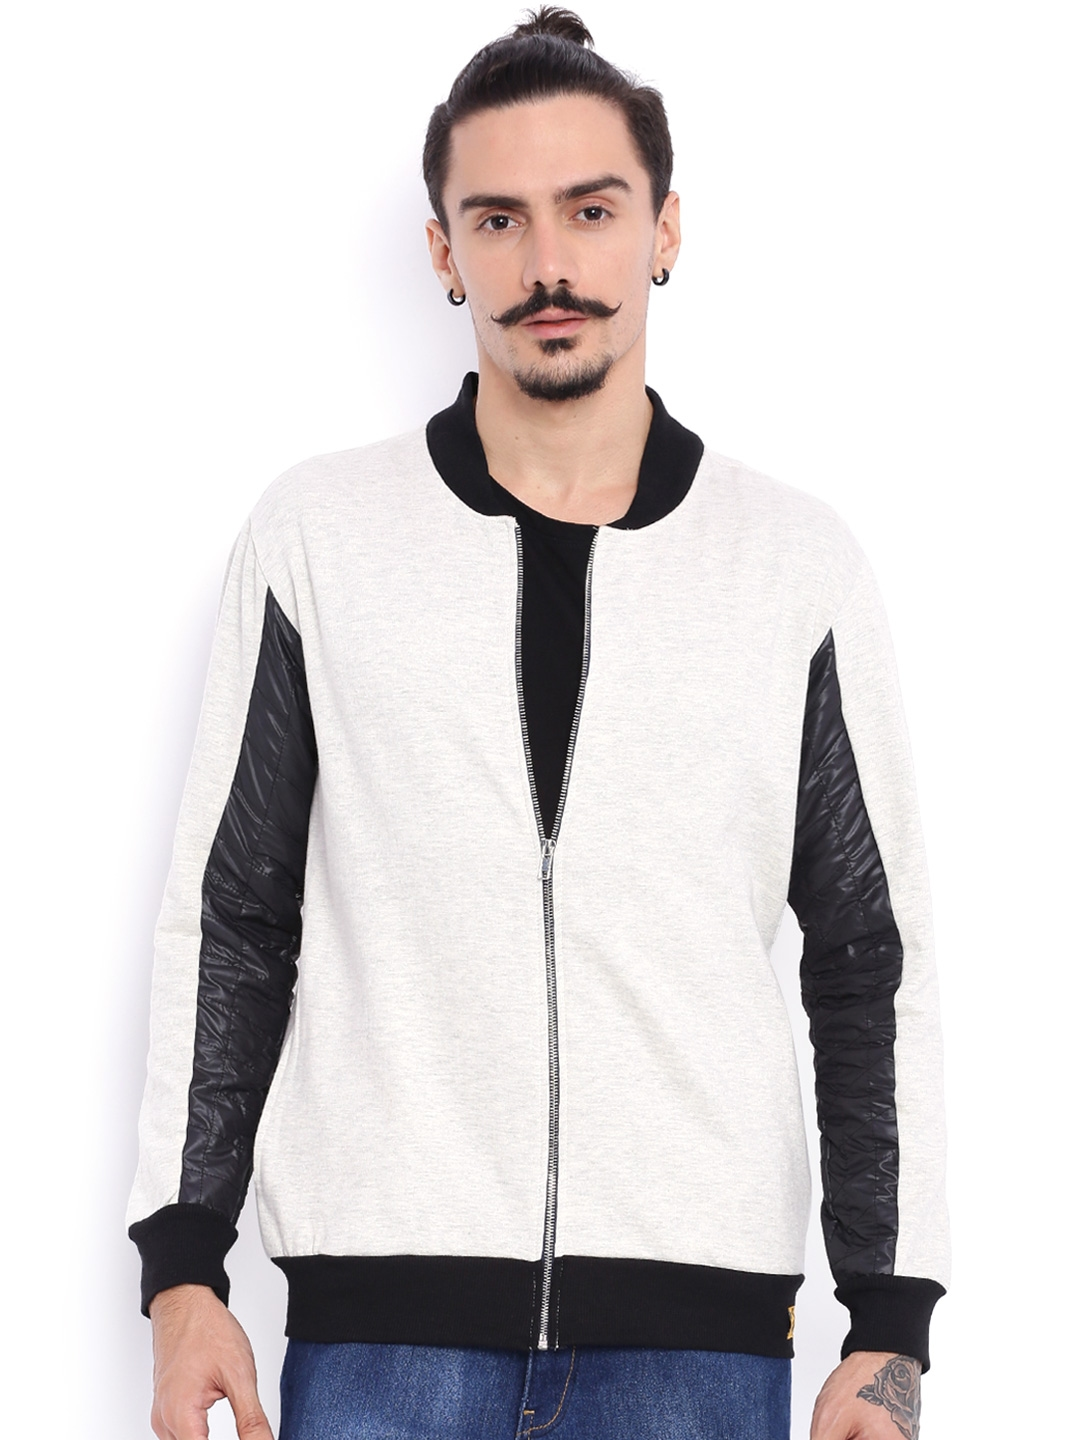 eff4c9927 Buy Campus Sutra Grey Bomber Jacket With Quilted Detail - Jackets ...